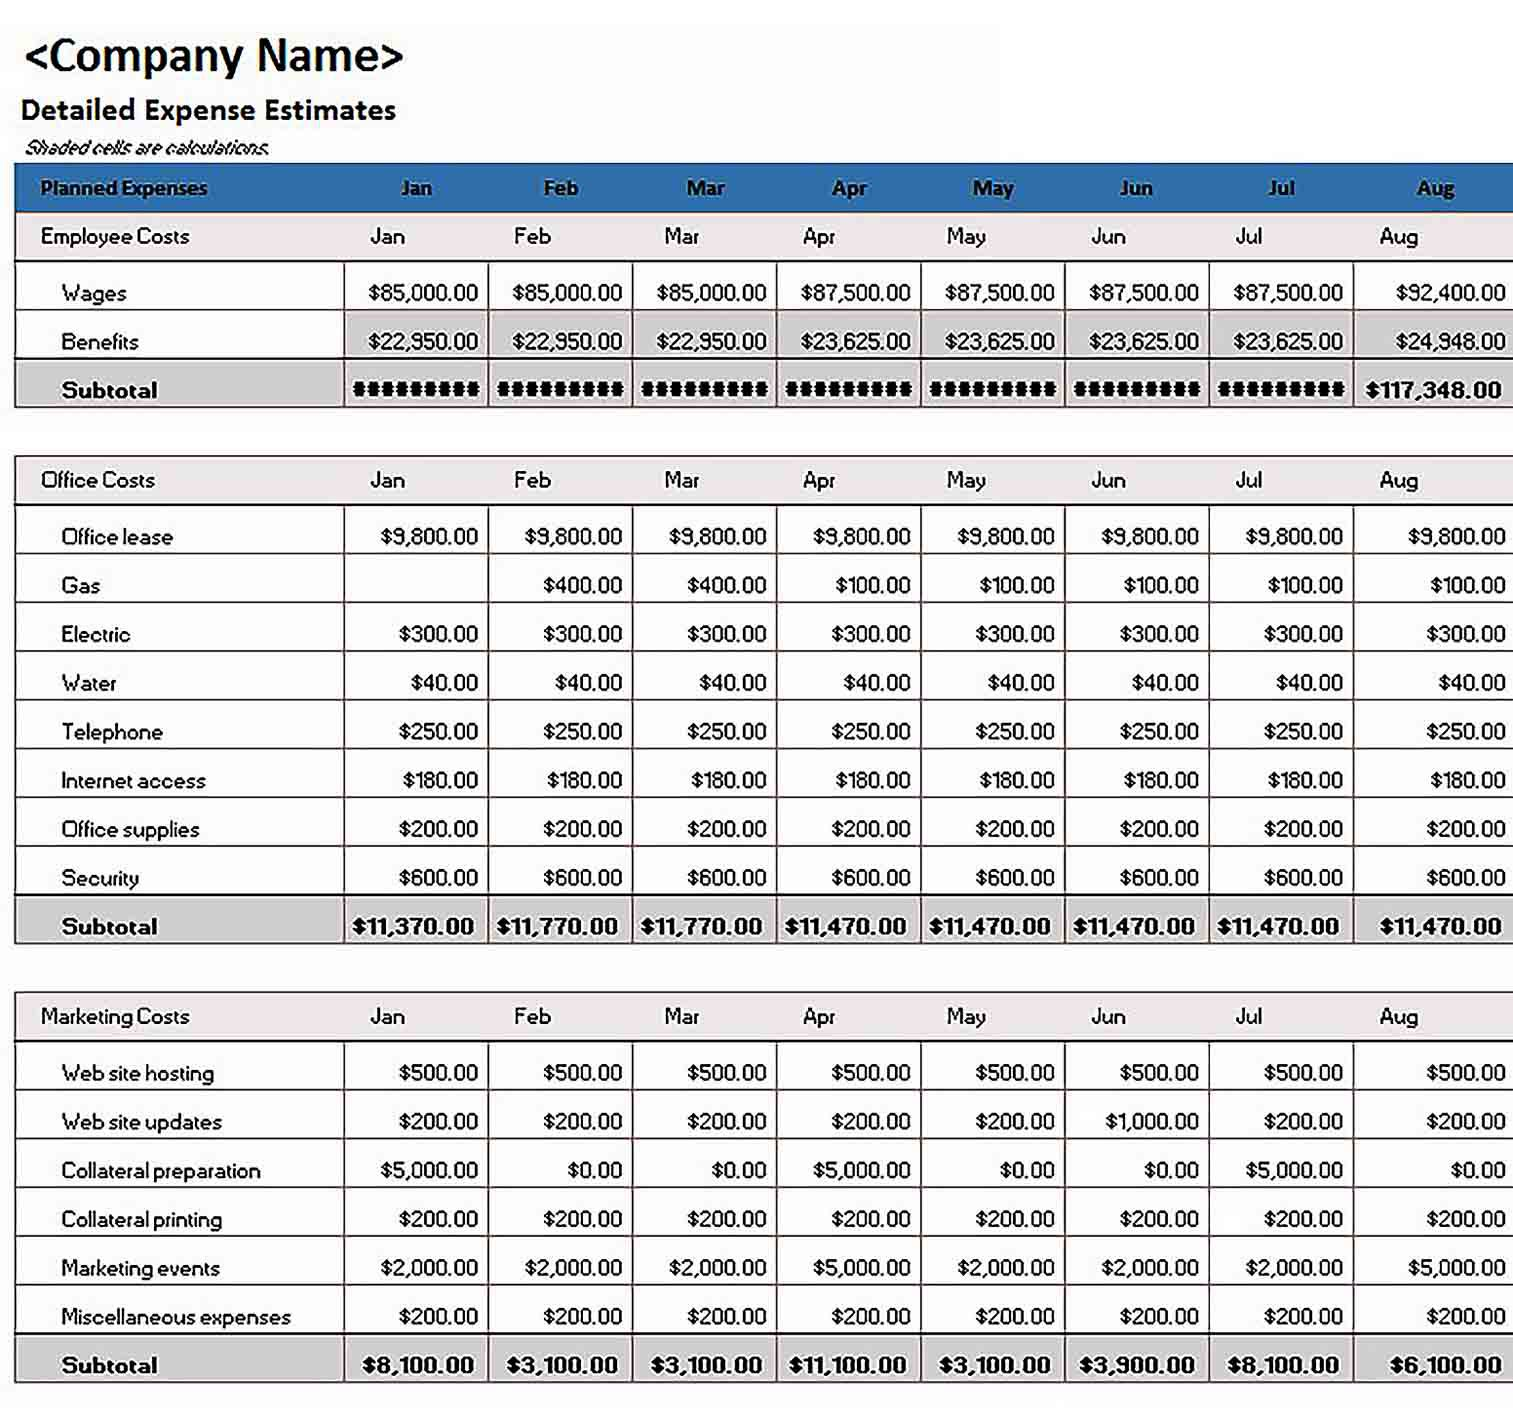 008 Awesome Budgeting Template In Excel Photo  Training Budget Free Download ProjectFull